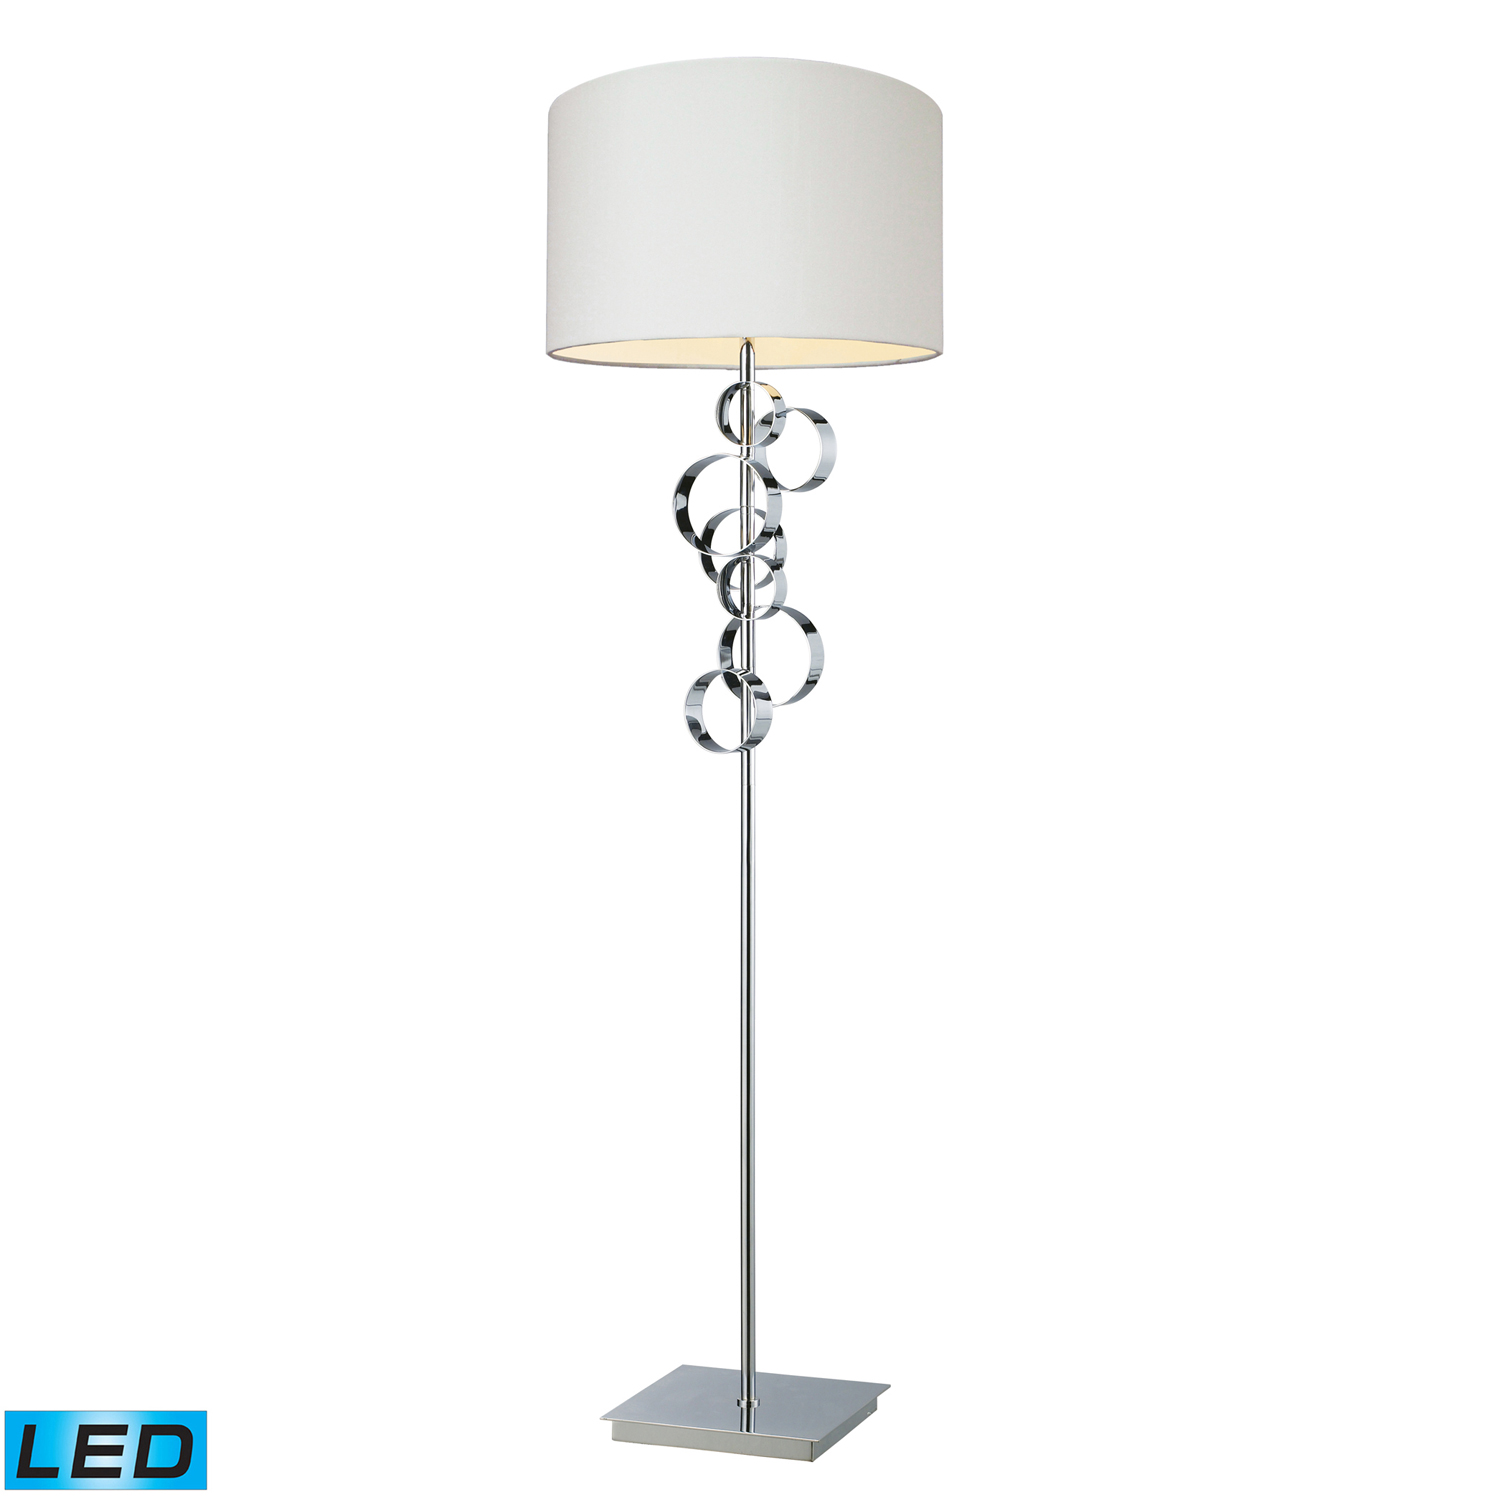 Elk Lighting D1476-LED Avon Floor Lamp - Chrome